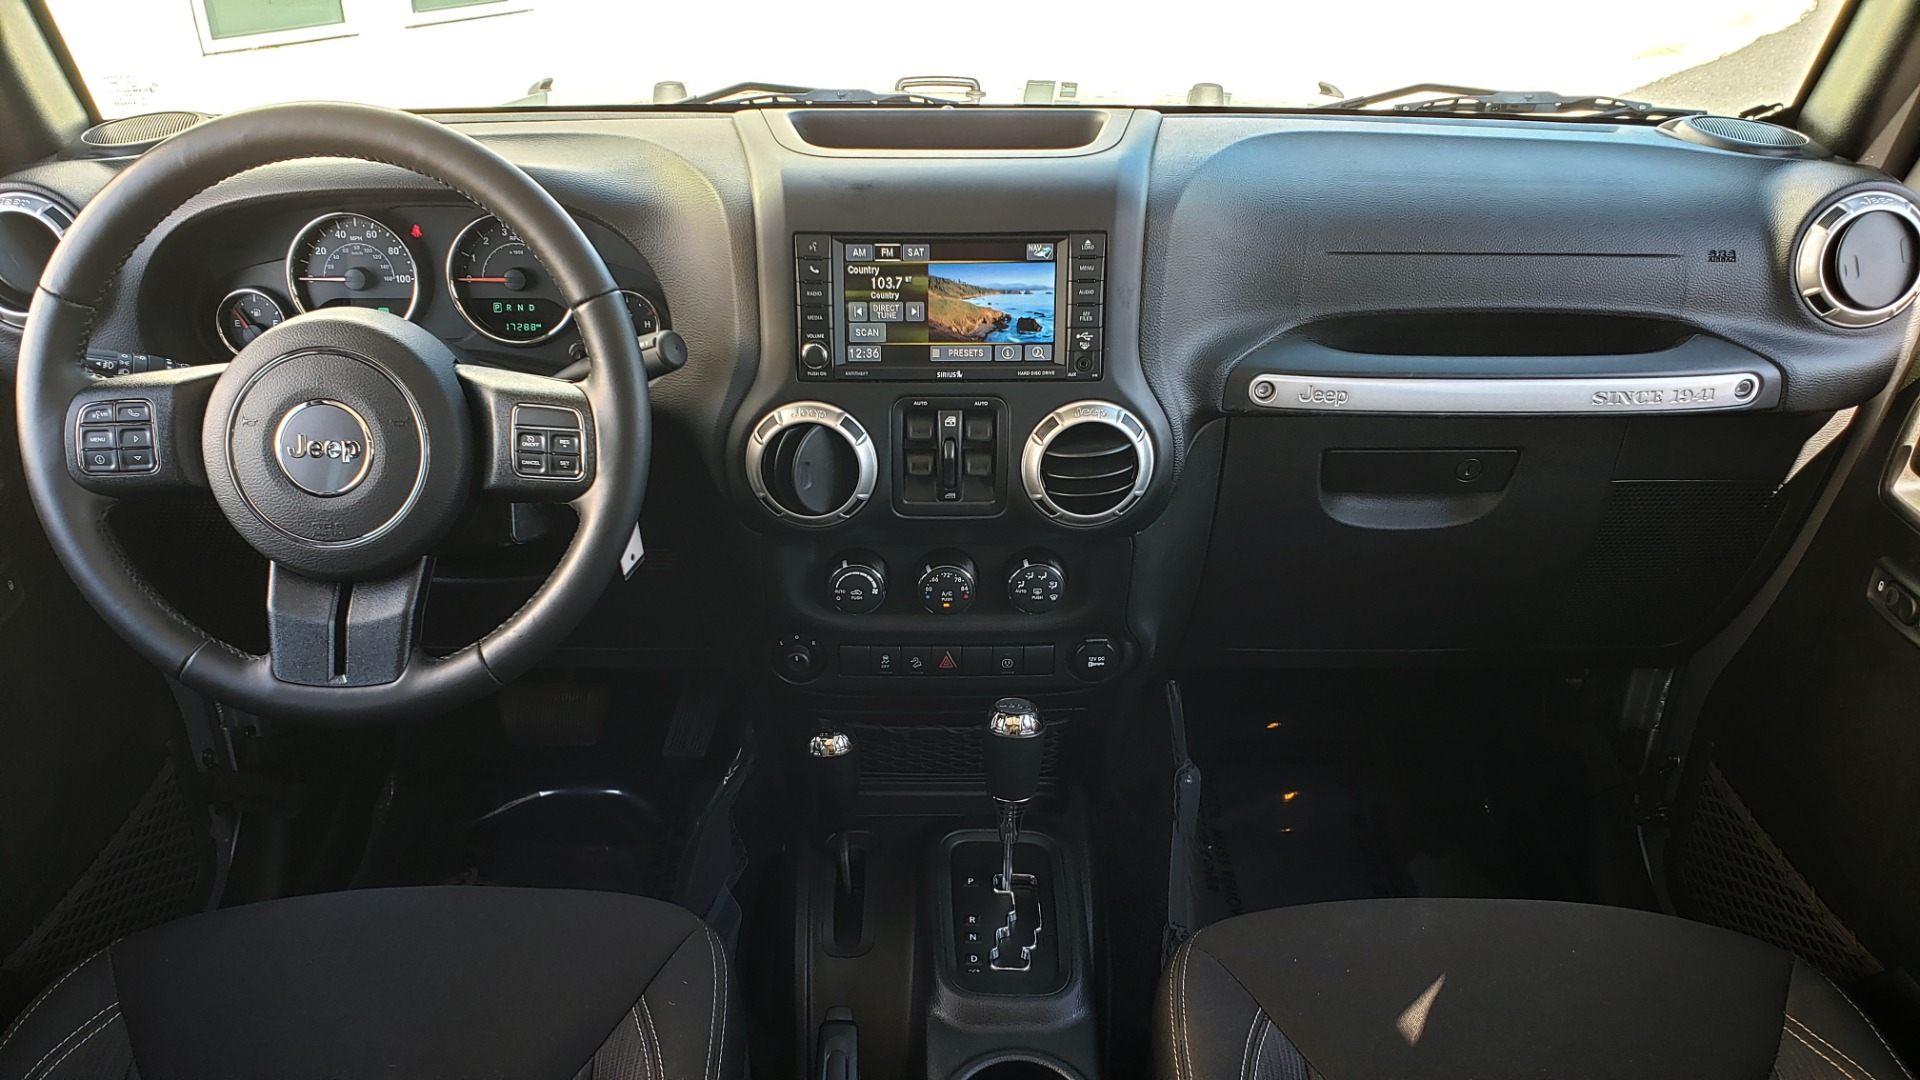 Used 2017 Jeep WRANGLER UNLIMITED SAHARA 4X4 / 3-PC FREEDOM TOP / 3.6L V6 / 5-SPD AUTO for sale Sold at Formula Imports in Charlotte NC 28227 74